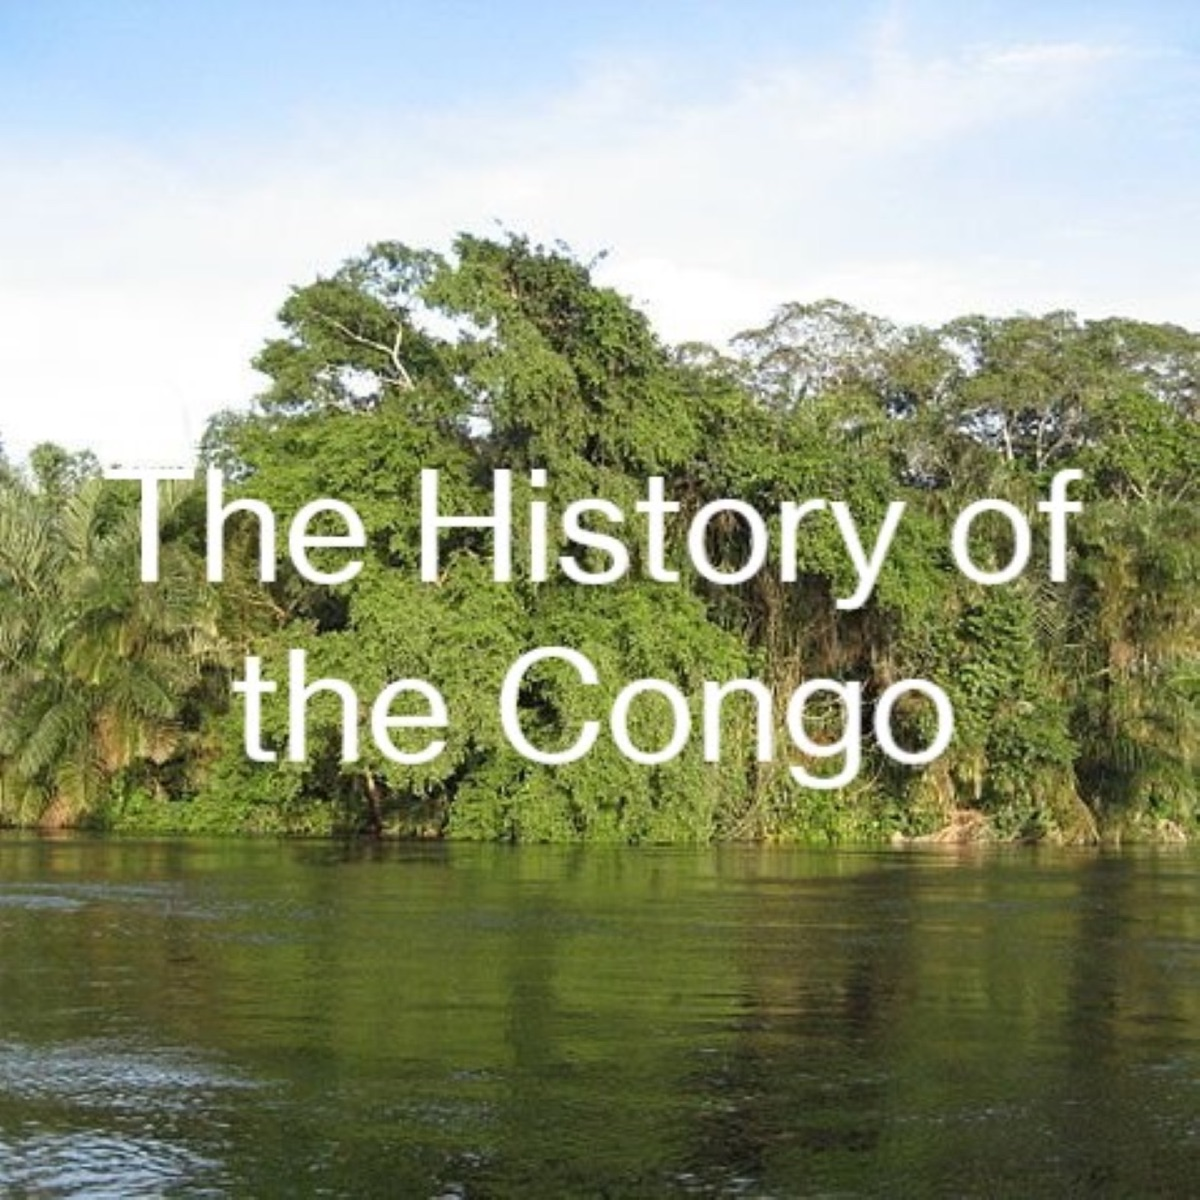 The History of the Congo